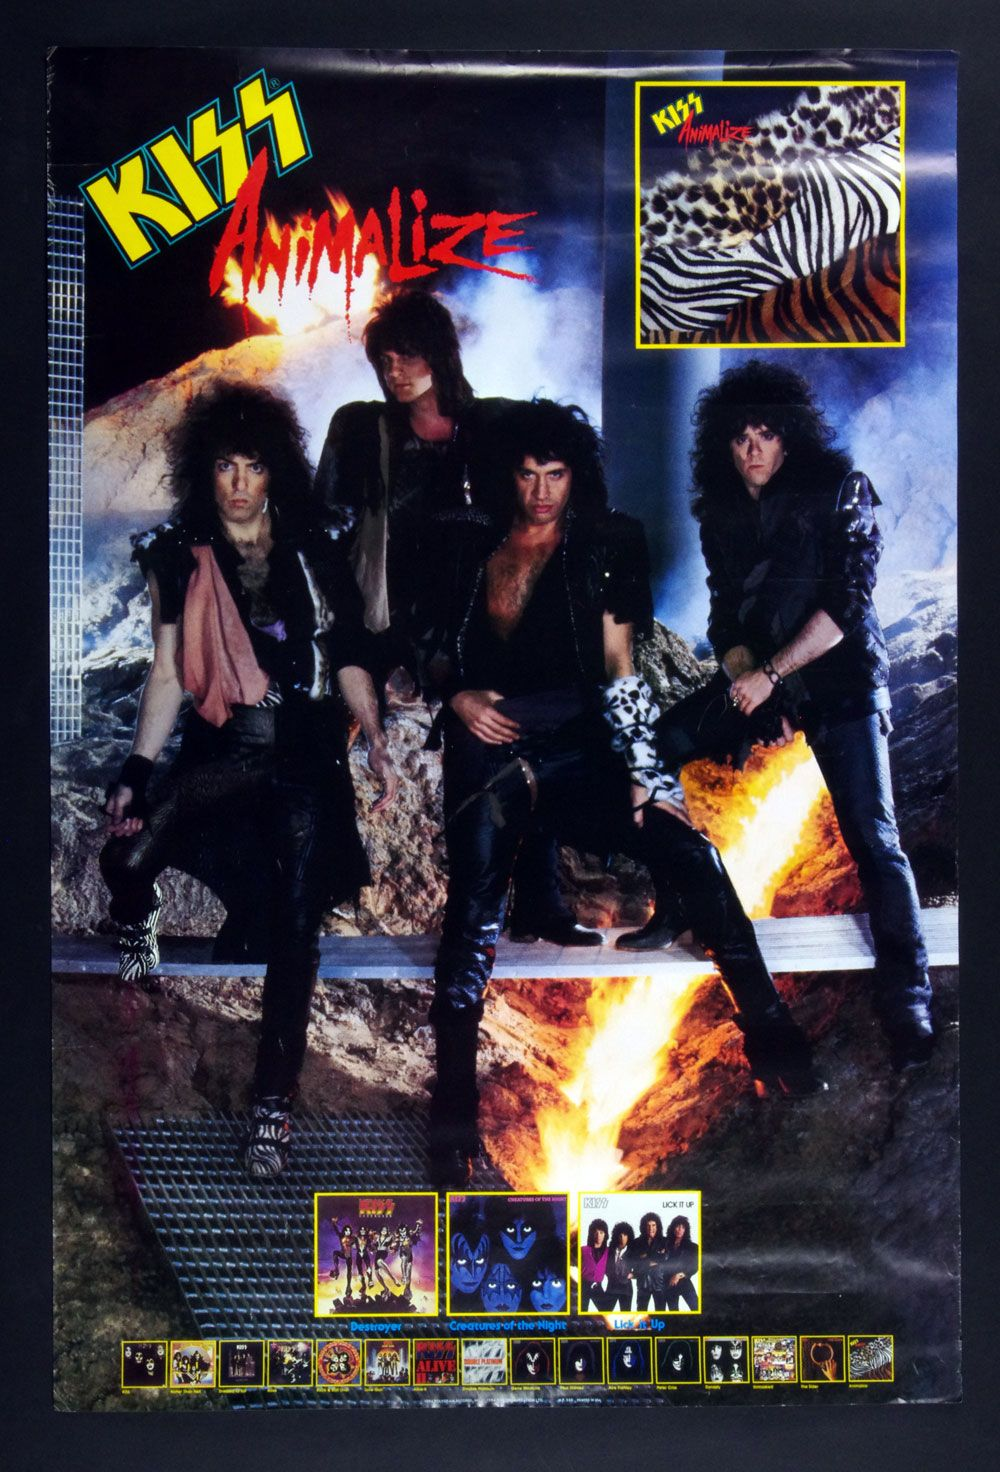 Kiss Animalize 1984 New Album Promo Vintage Poster 24 X 36 With